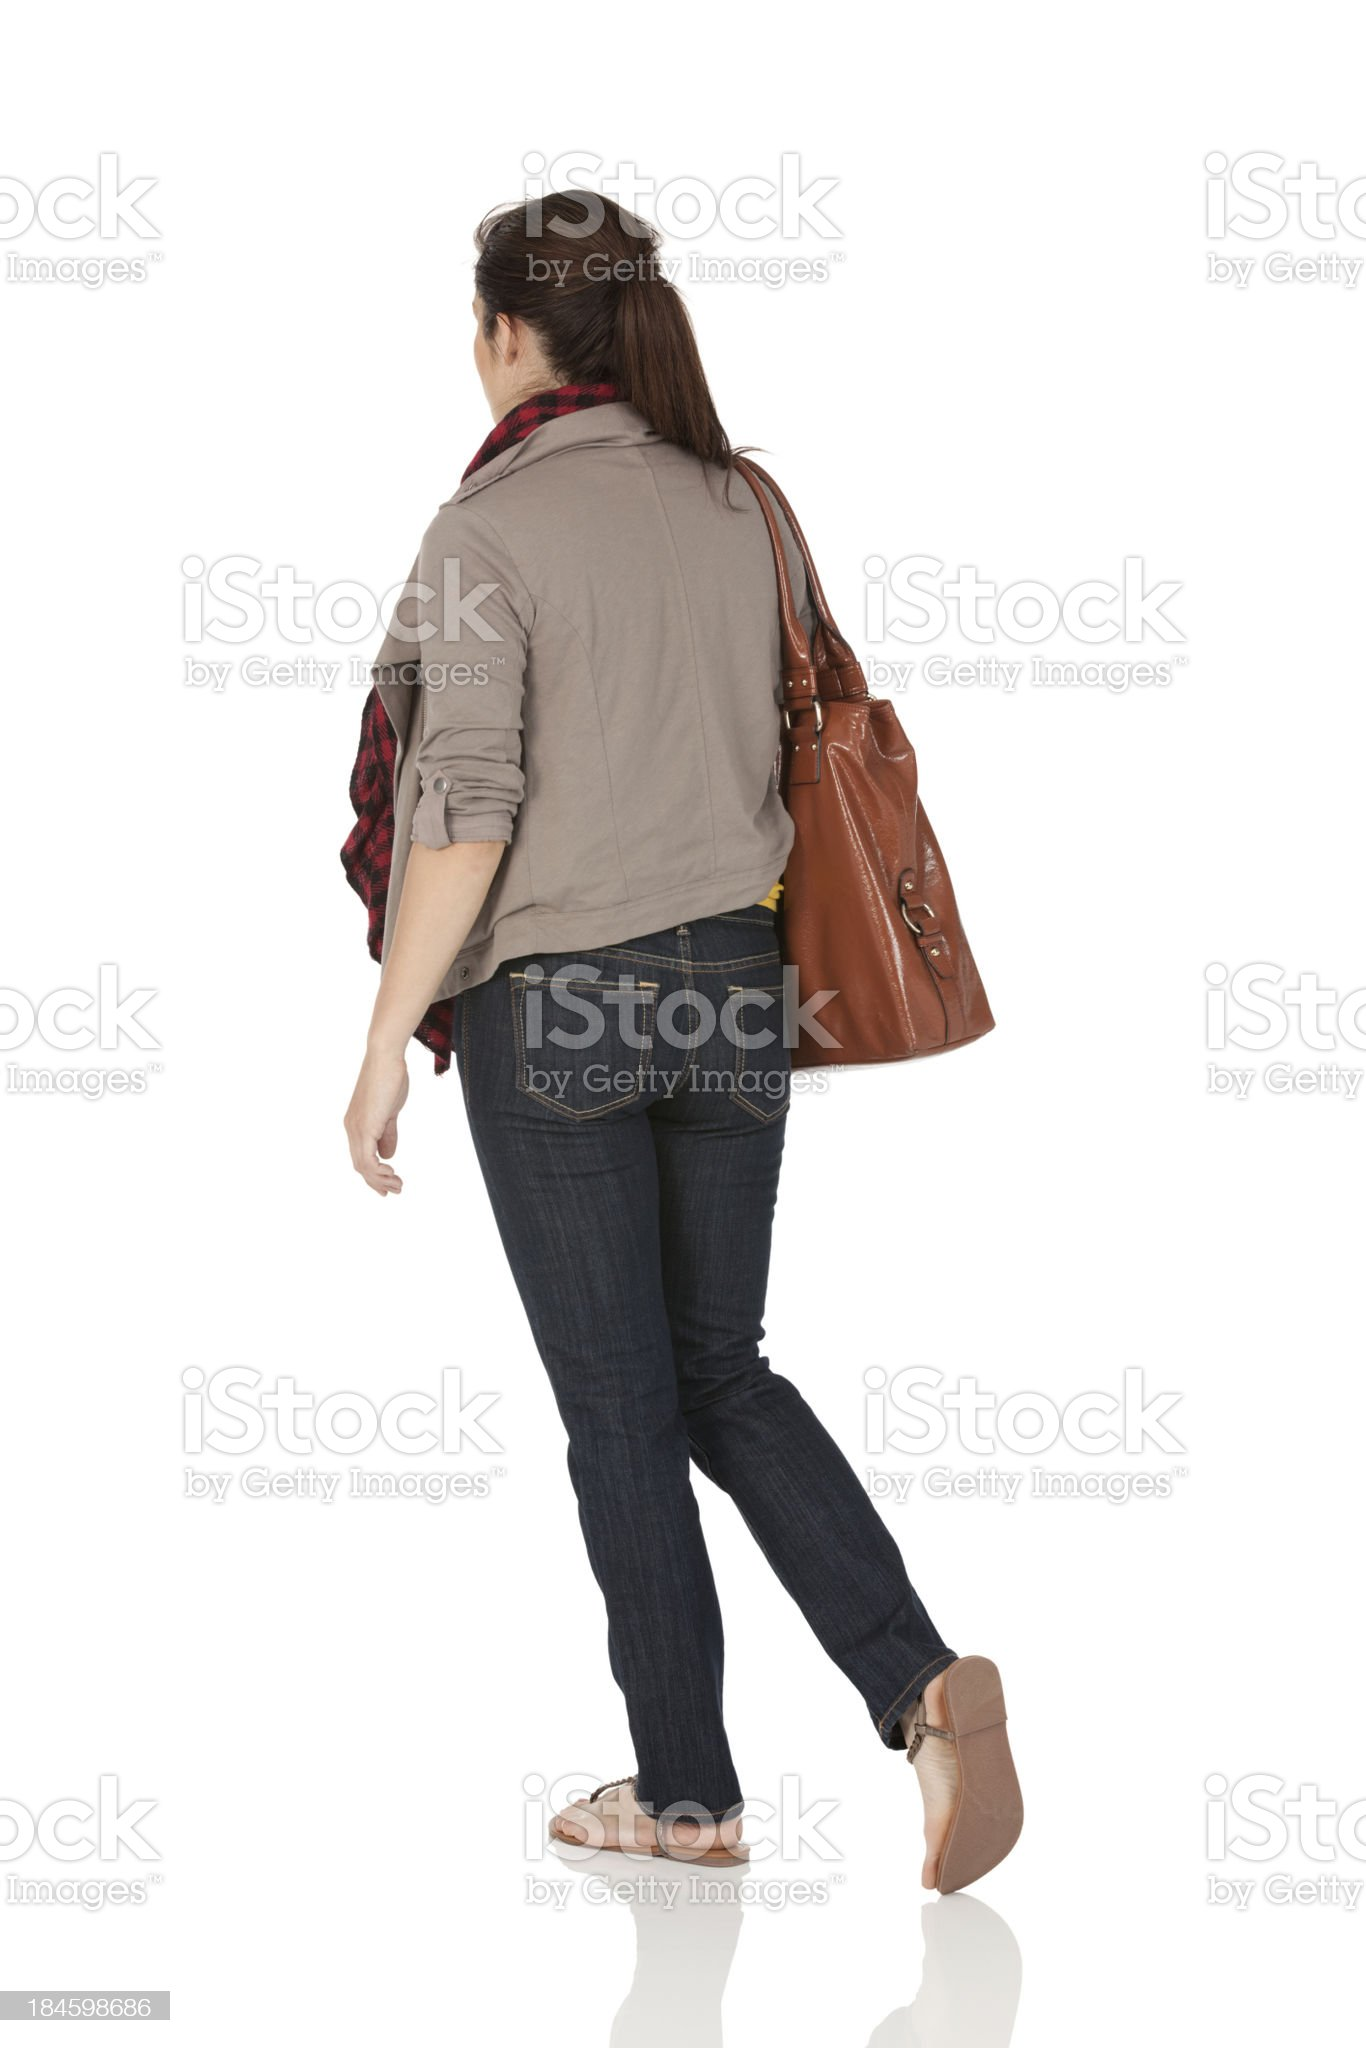 Woman carrying a leather bag royalty-free stock photo